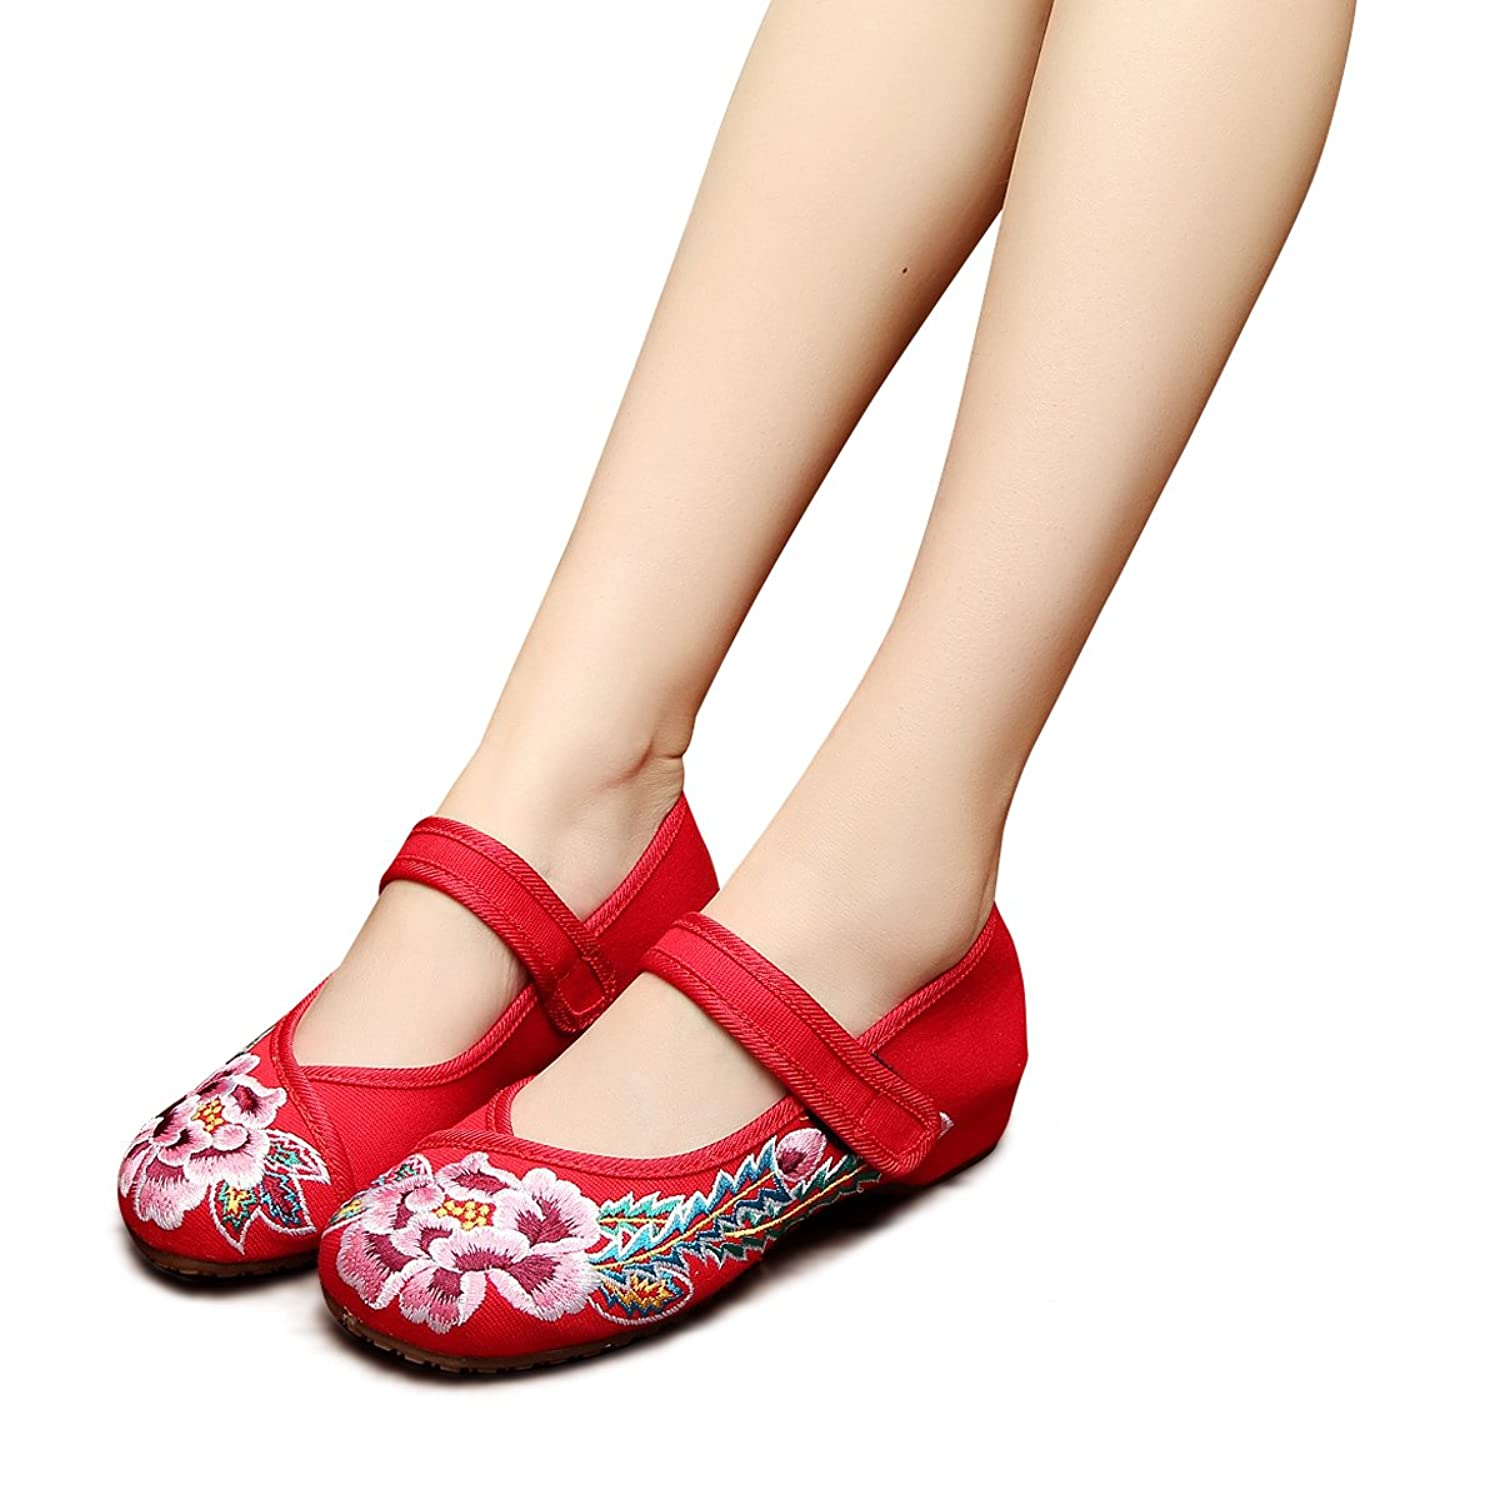 883bbf4de605f Veowalk Floral Embroidery Women's Canvas Flat Shoes Vintage Mary ...